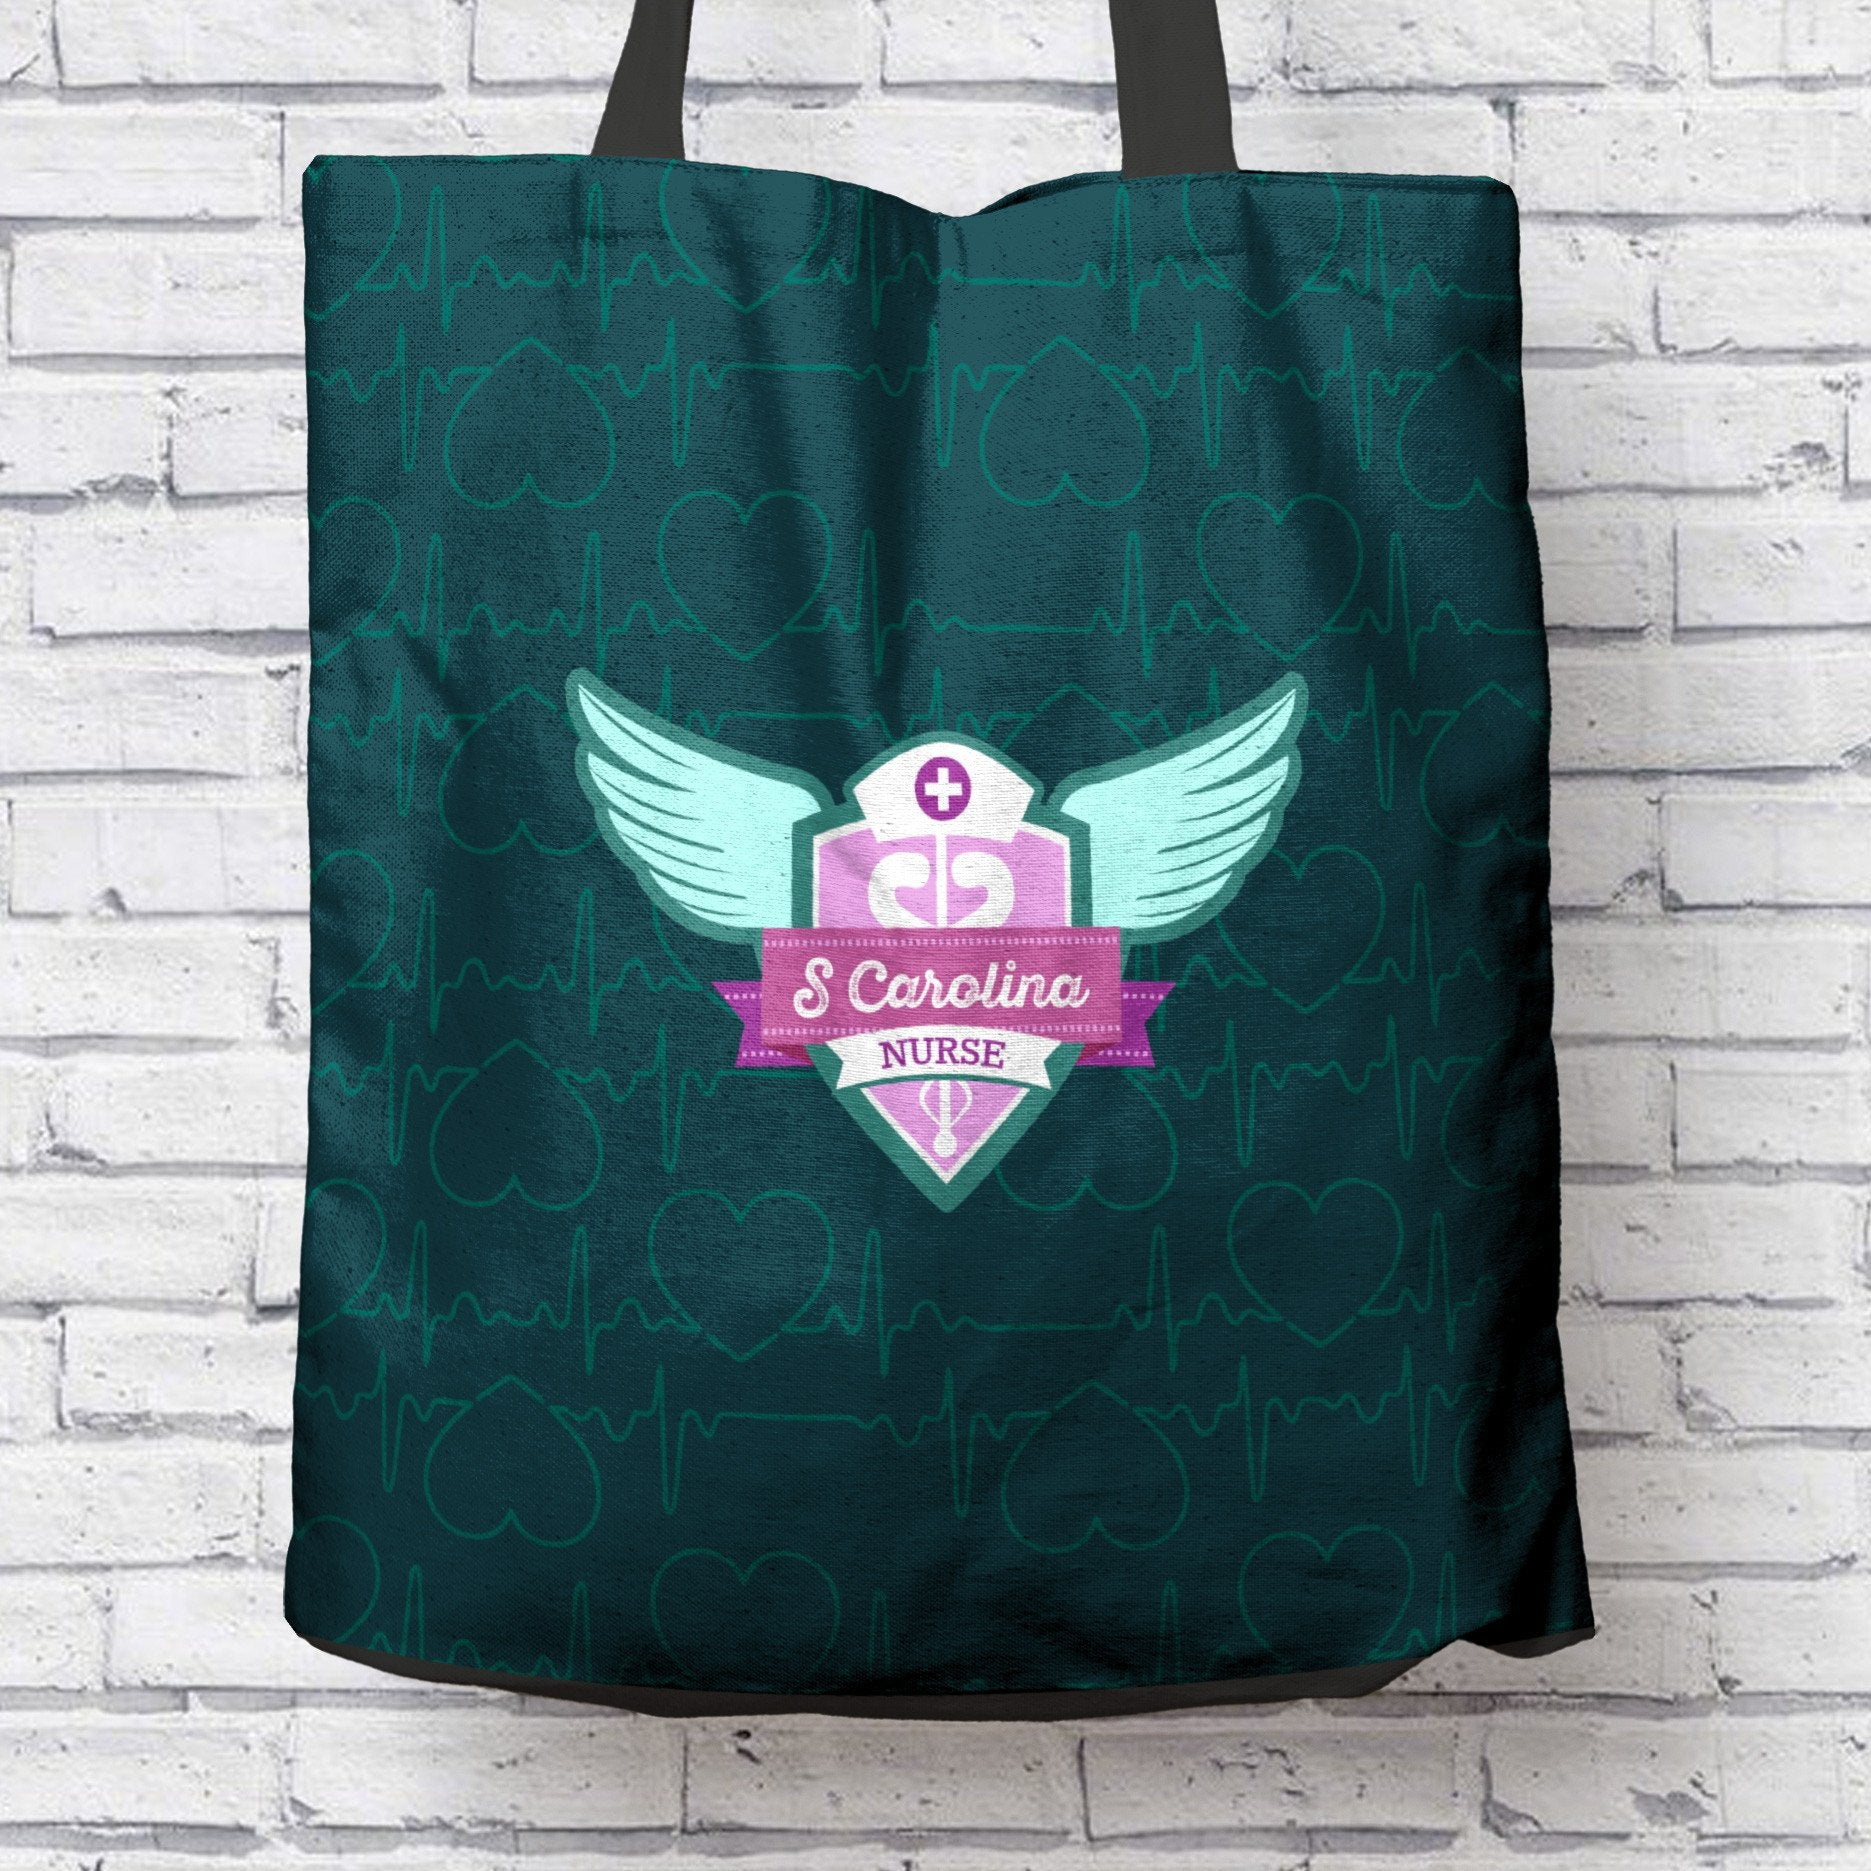 SC Nurse Green Tote Bag